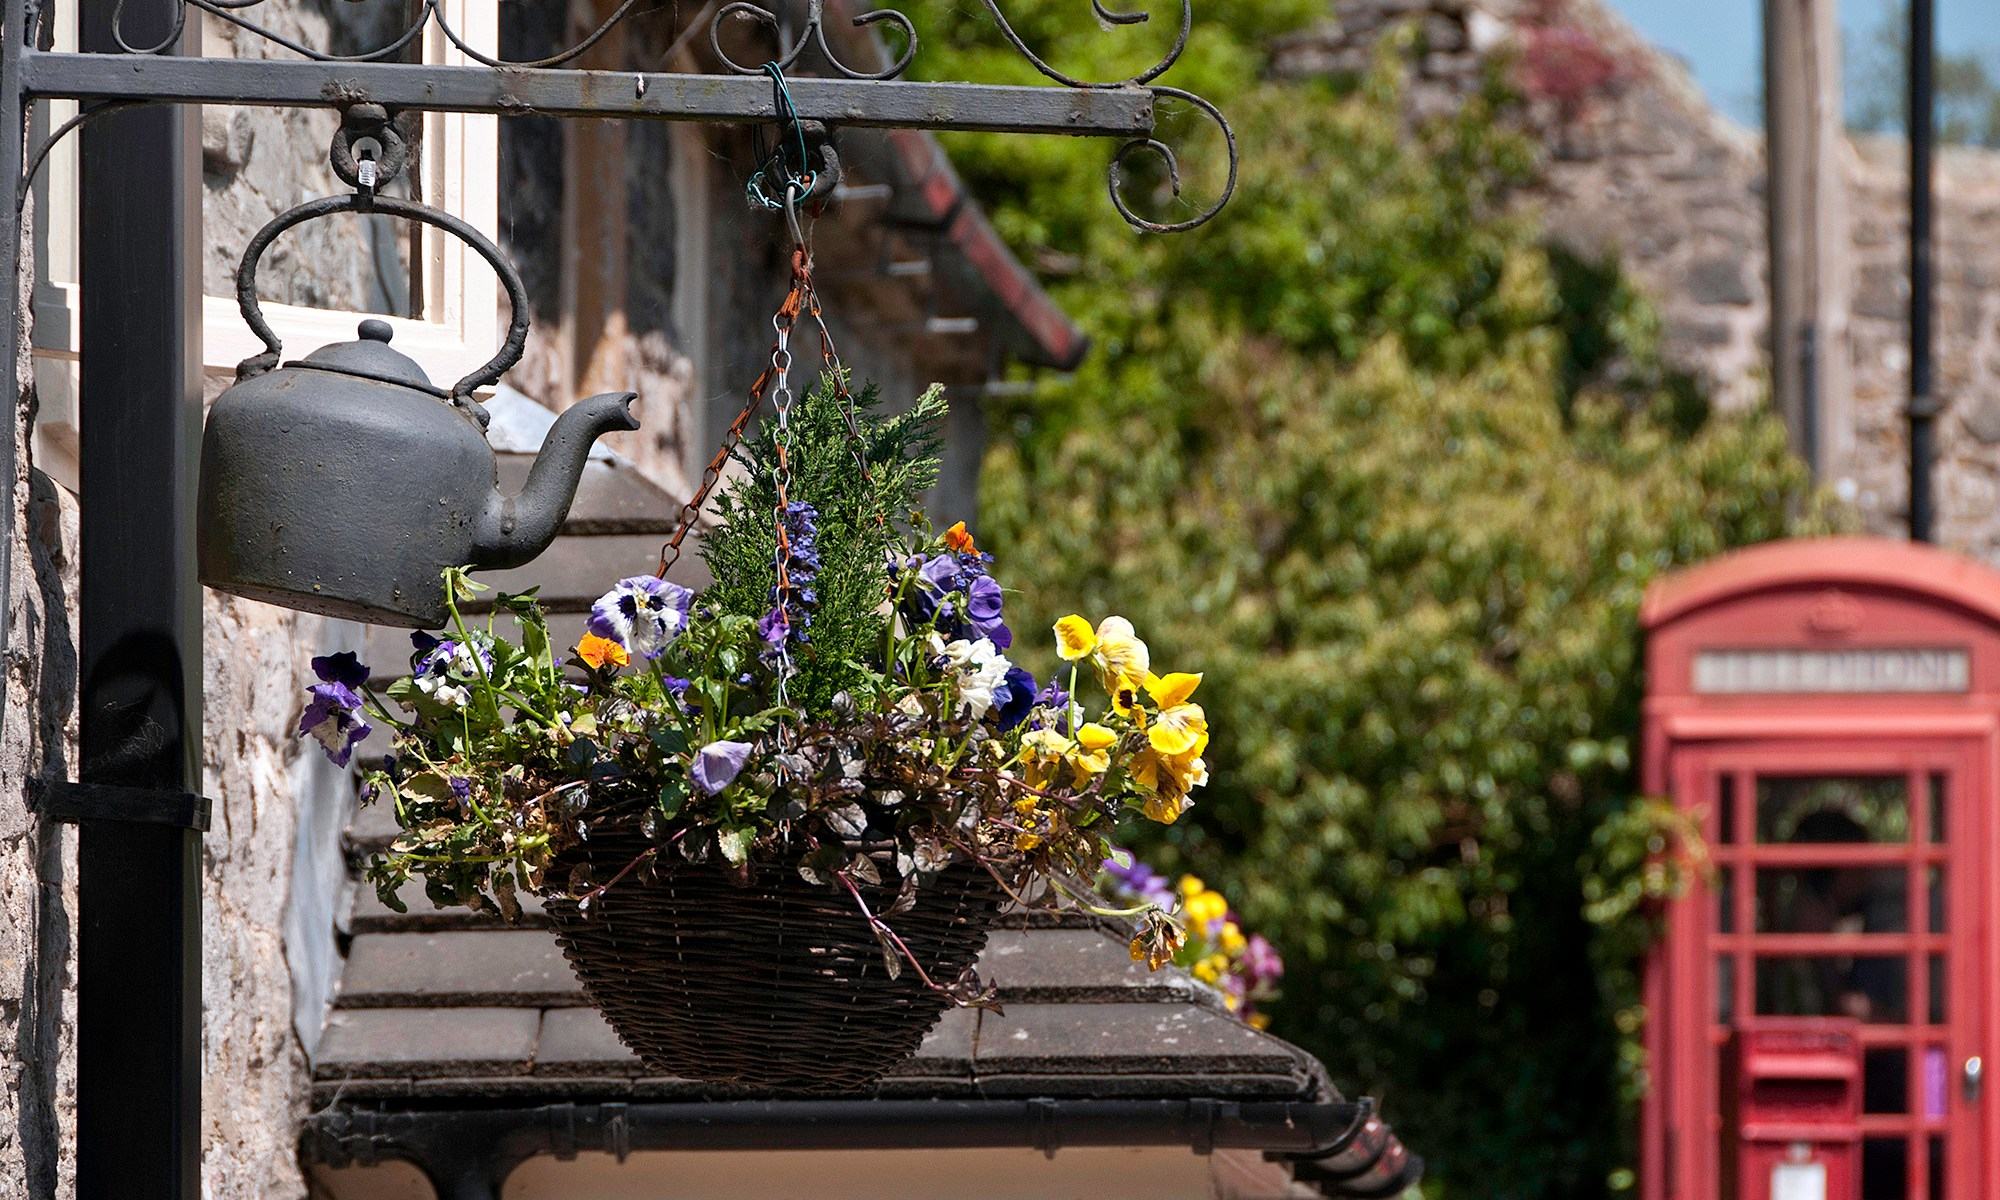 Kettle and Hanging Basket